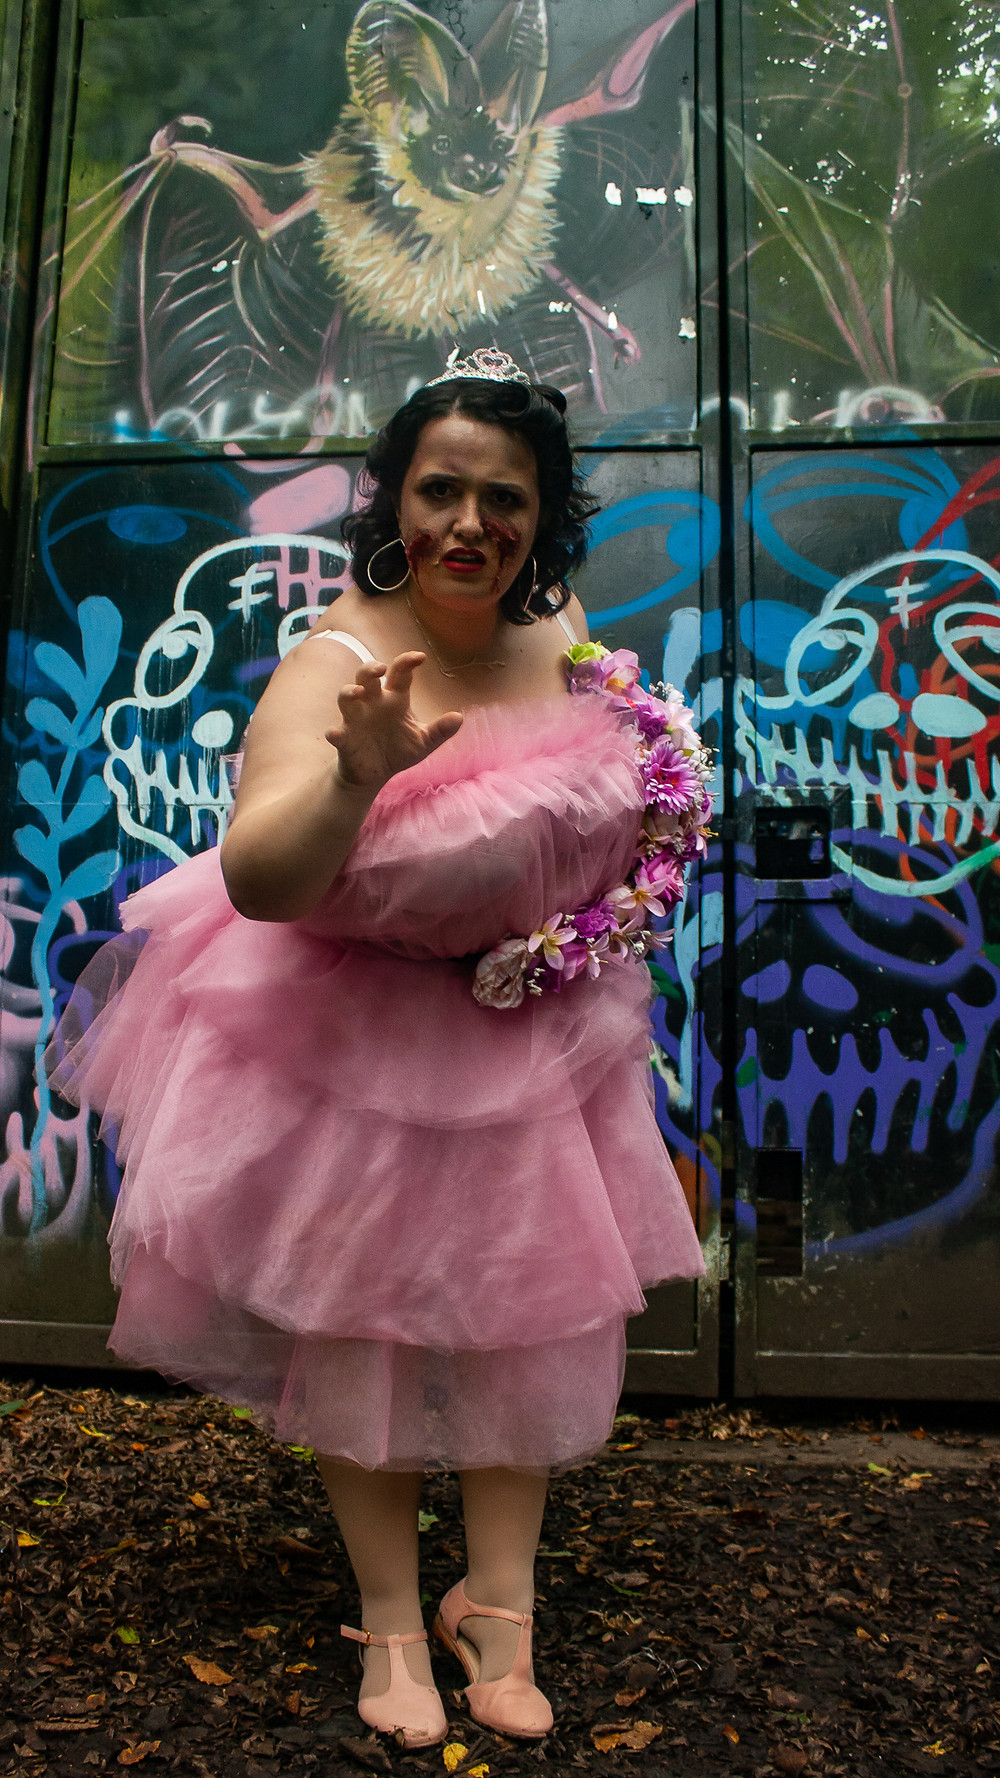 Zombie Prom Queen | Ethical Halloween | Ethical and sustainable fashion | Ethical and sustainable fancy dress | The Dopey vegan x The Revival Collective